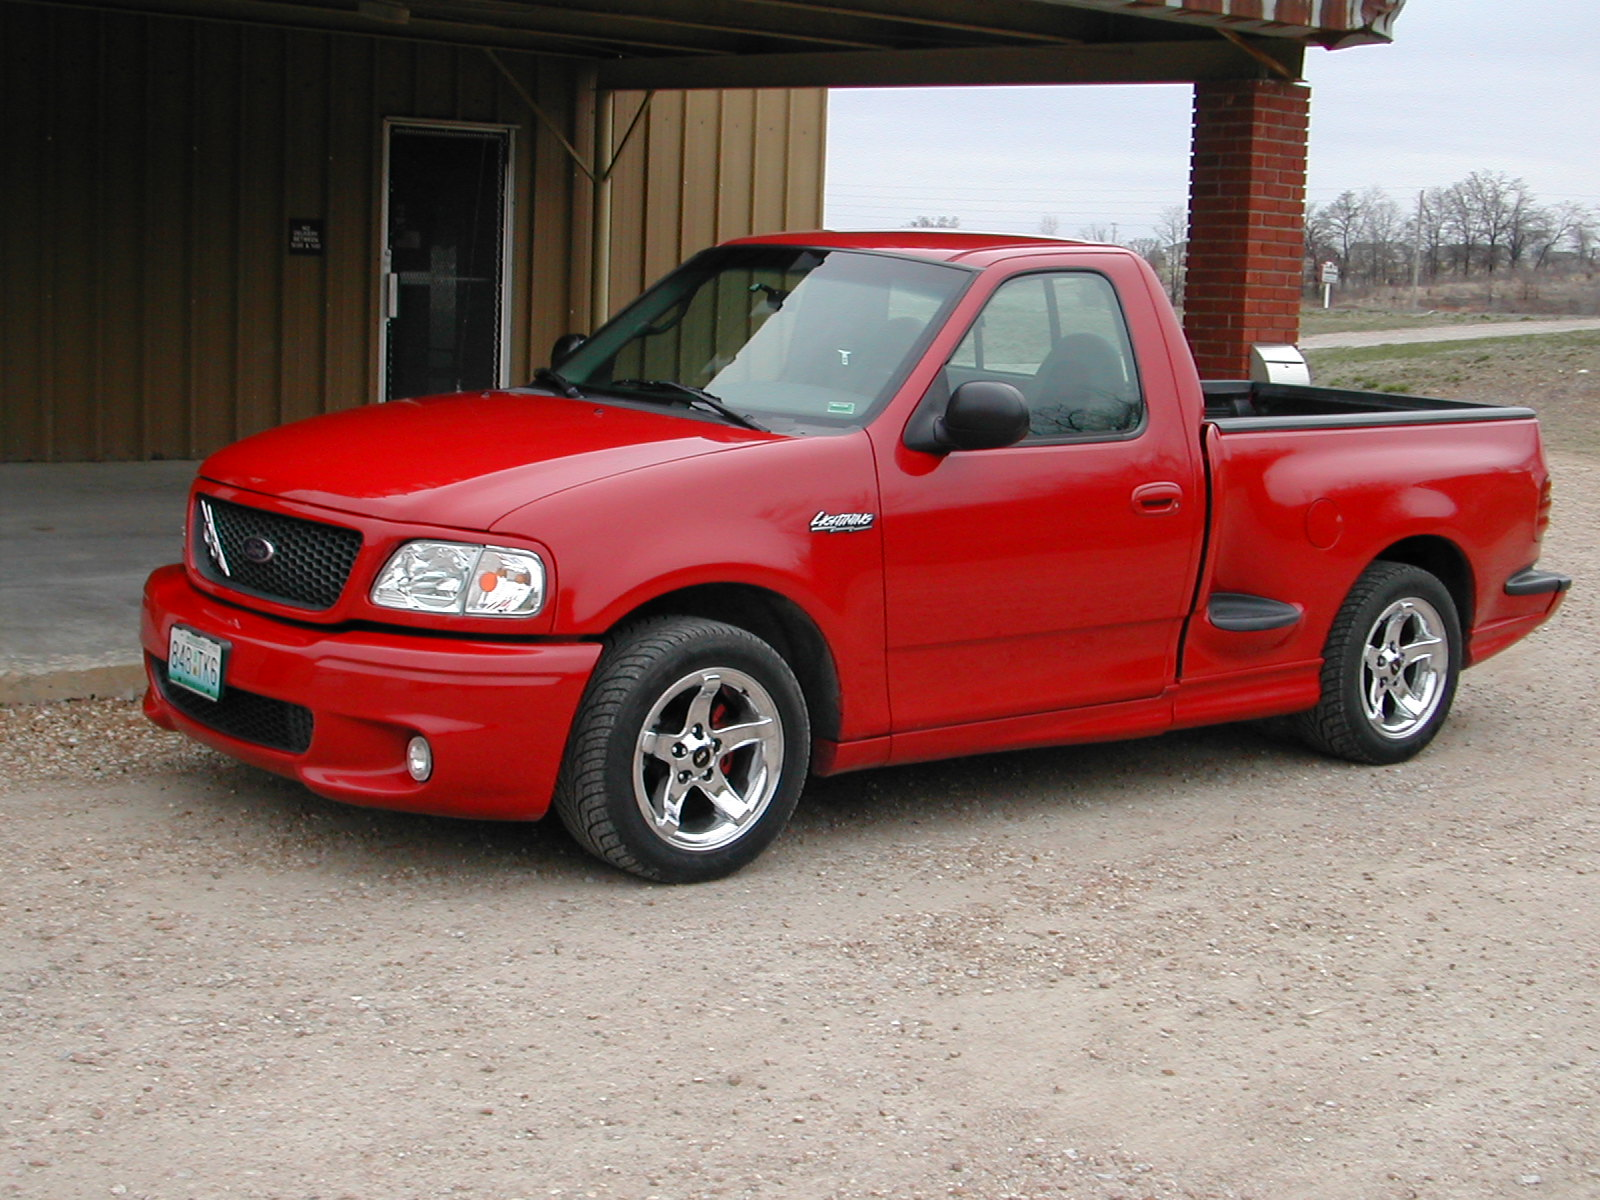 1999 Ford F-150 Svt Lightning #1